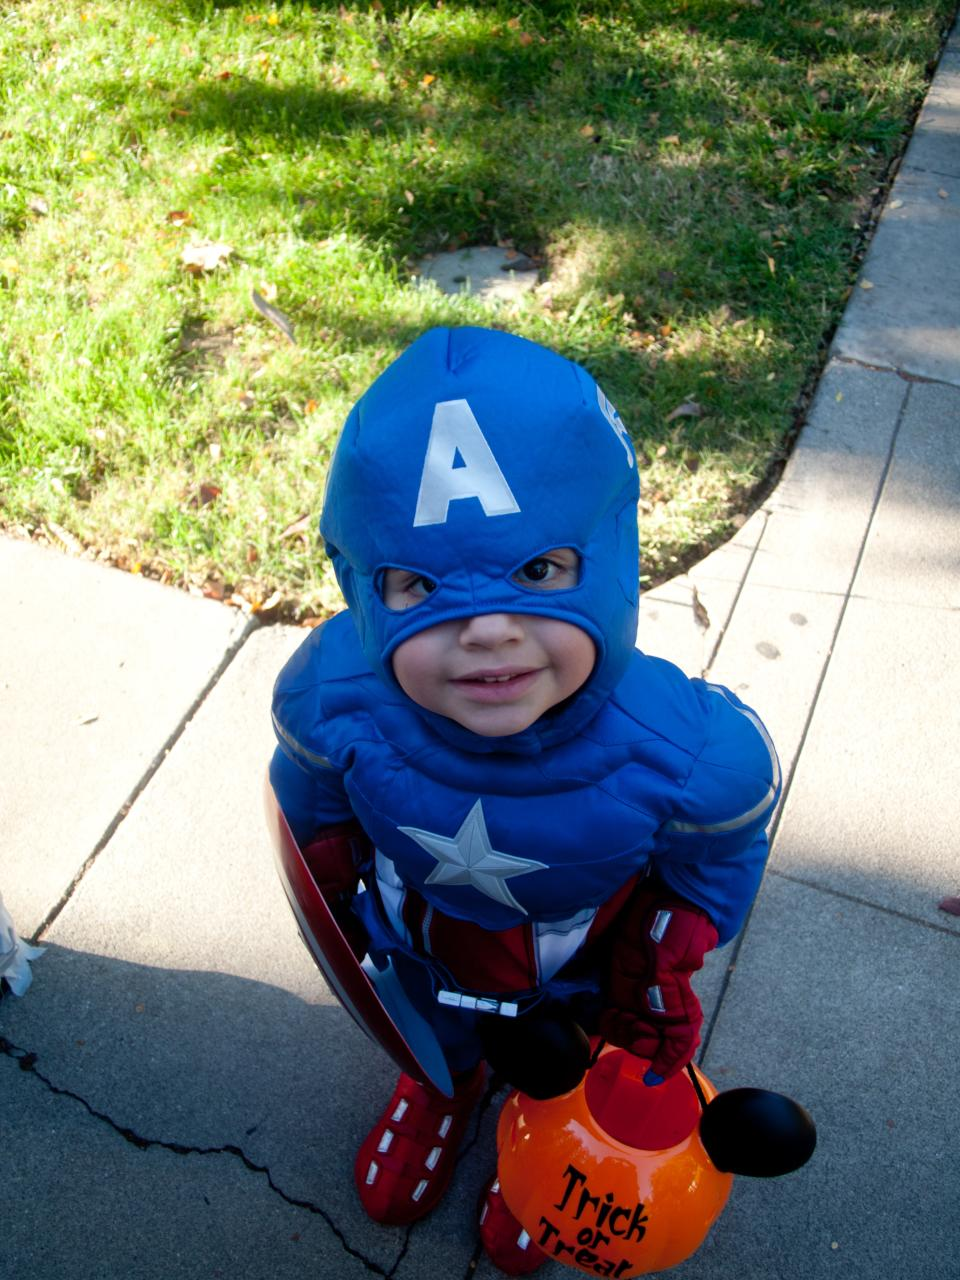 """Trick or Treat, citizen!"" Photo by Patrick Giblin, used under Creative Commons license."